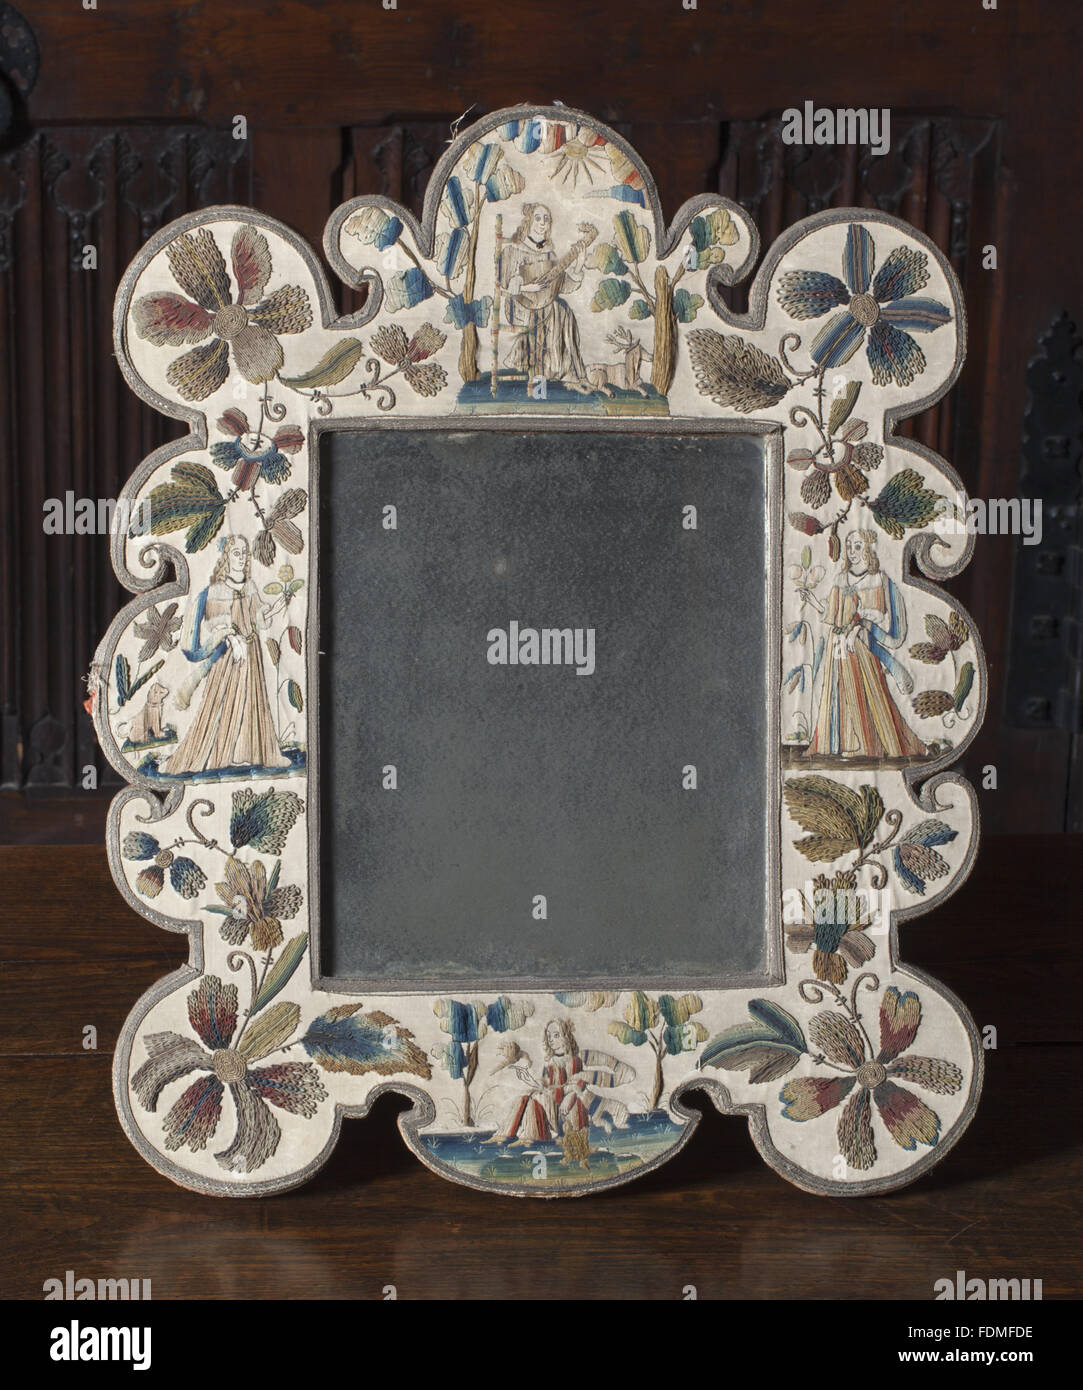 Mirror in shaped needlework frame at Melford Hall, Suffolk. Frame of embroidered figures, flowers, including four - Stock Image